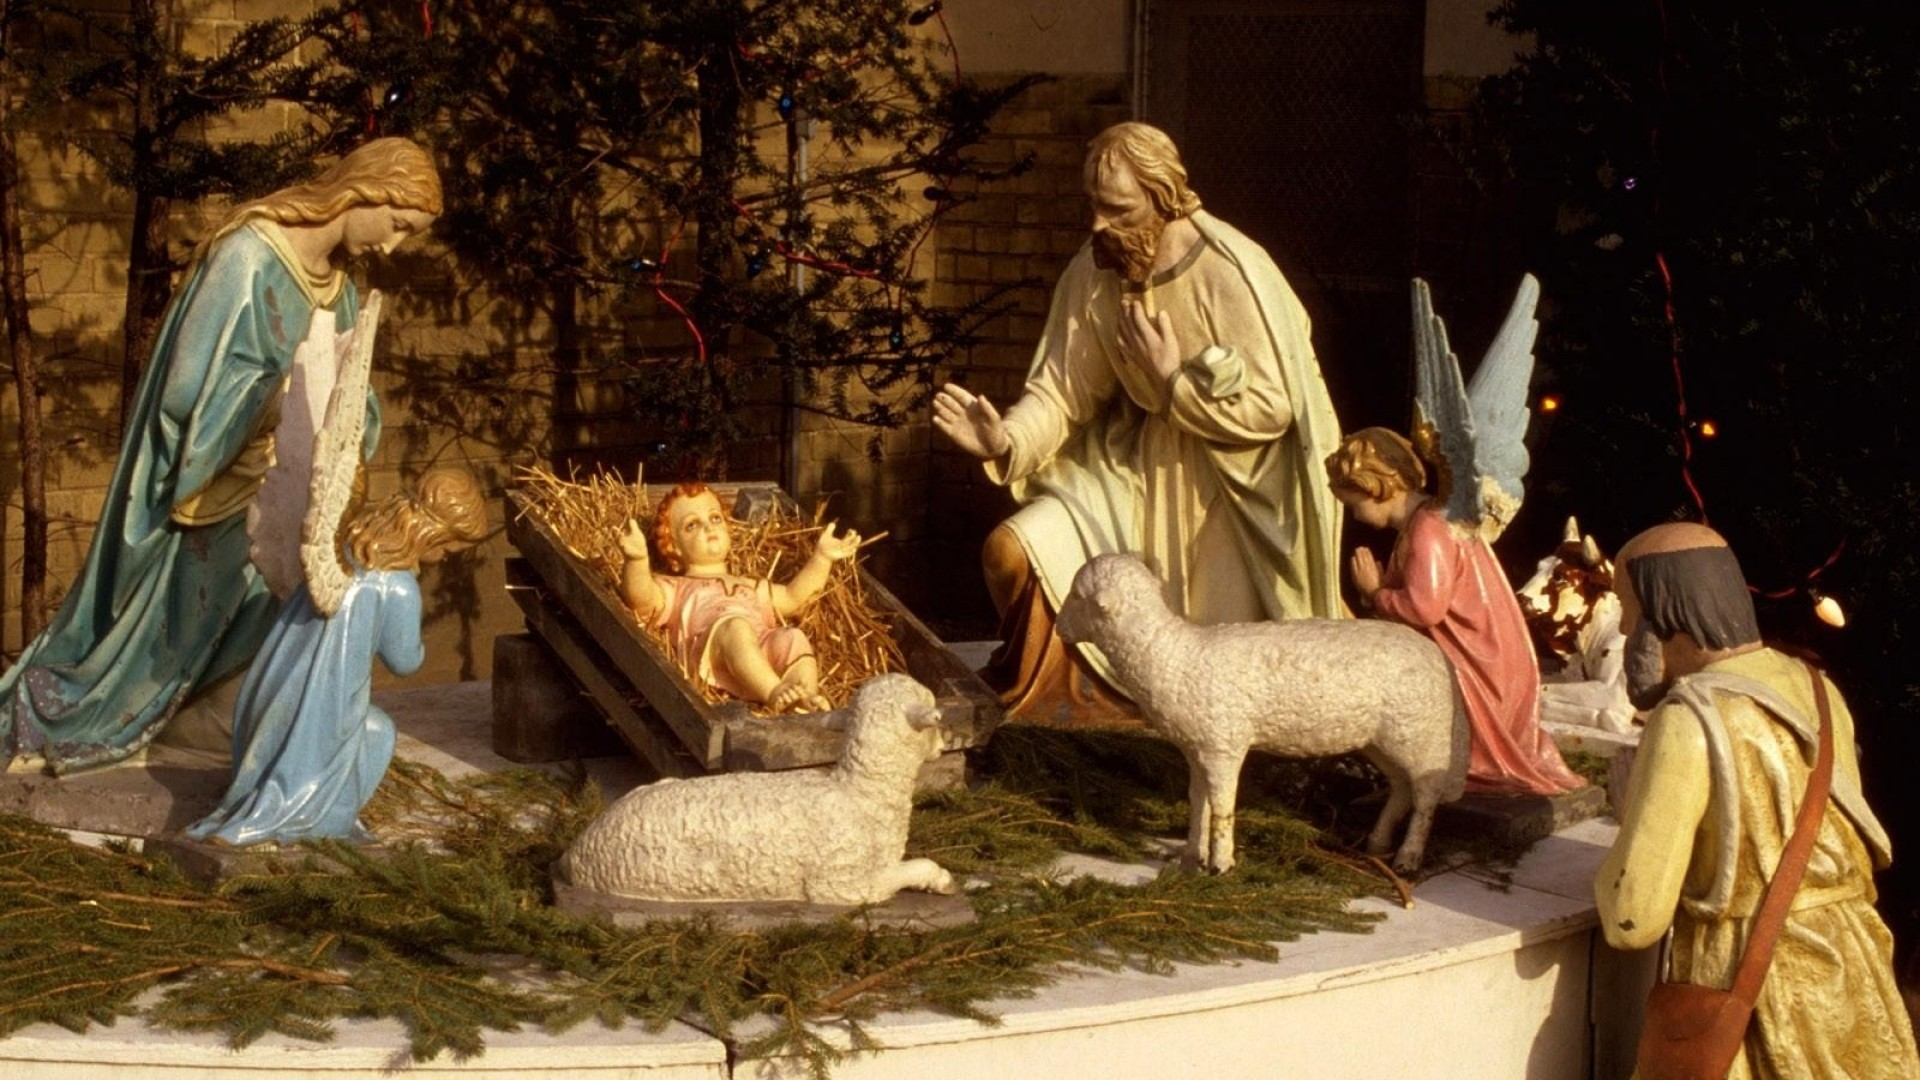 1920x1080 Preview wallpaper christmas, holiday, jesus, manger, sheep, needles, people,